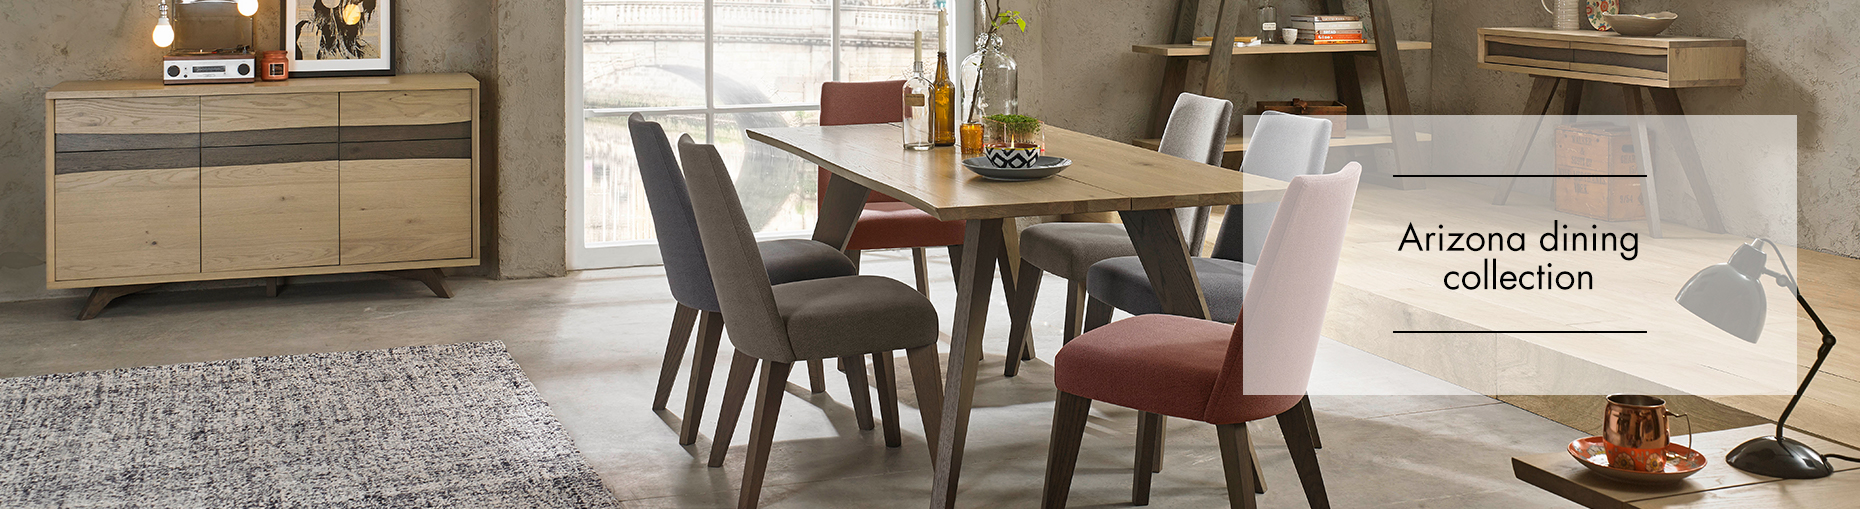 Arizona Dining collection at Forrest Furnishing